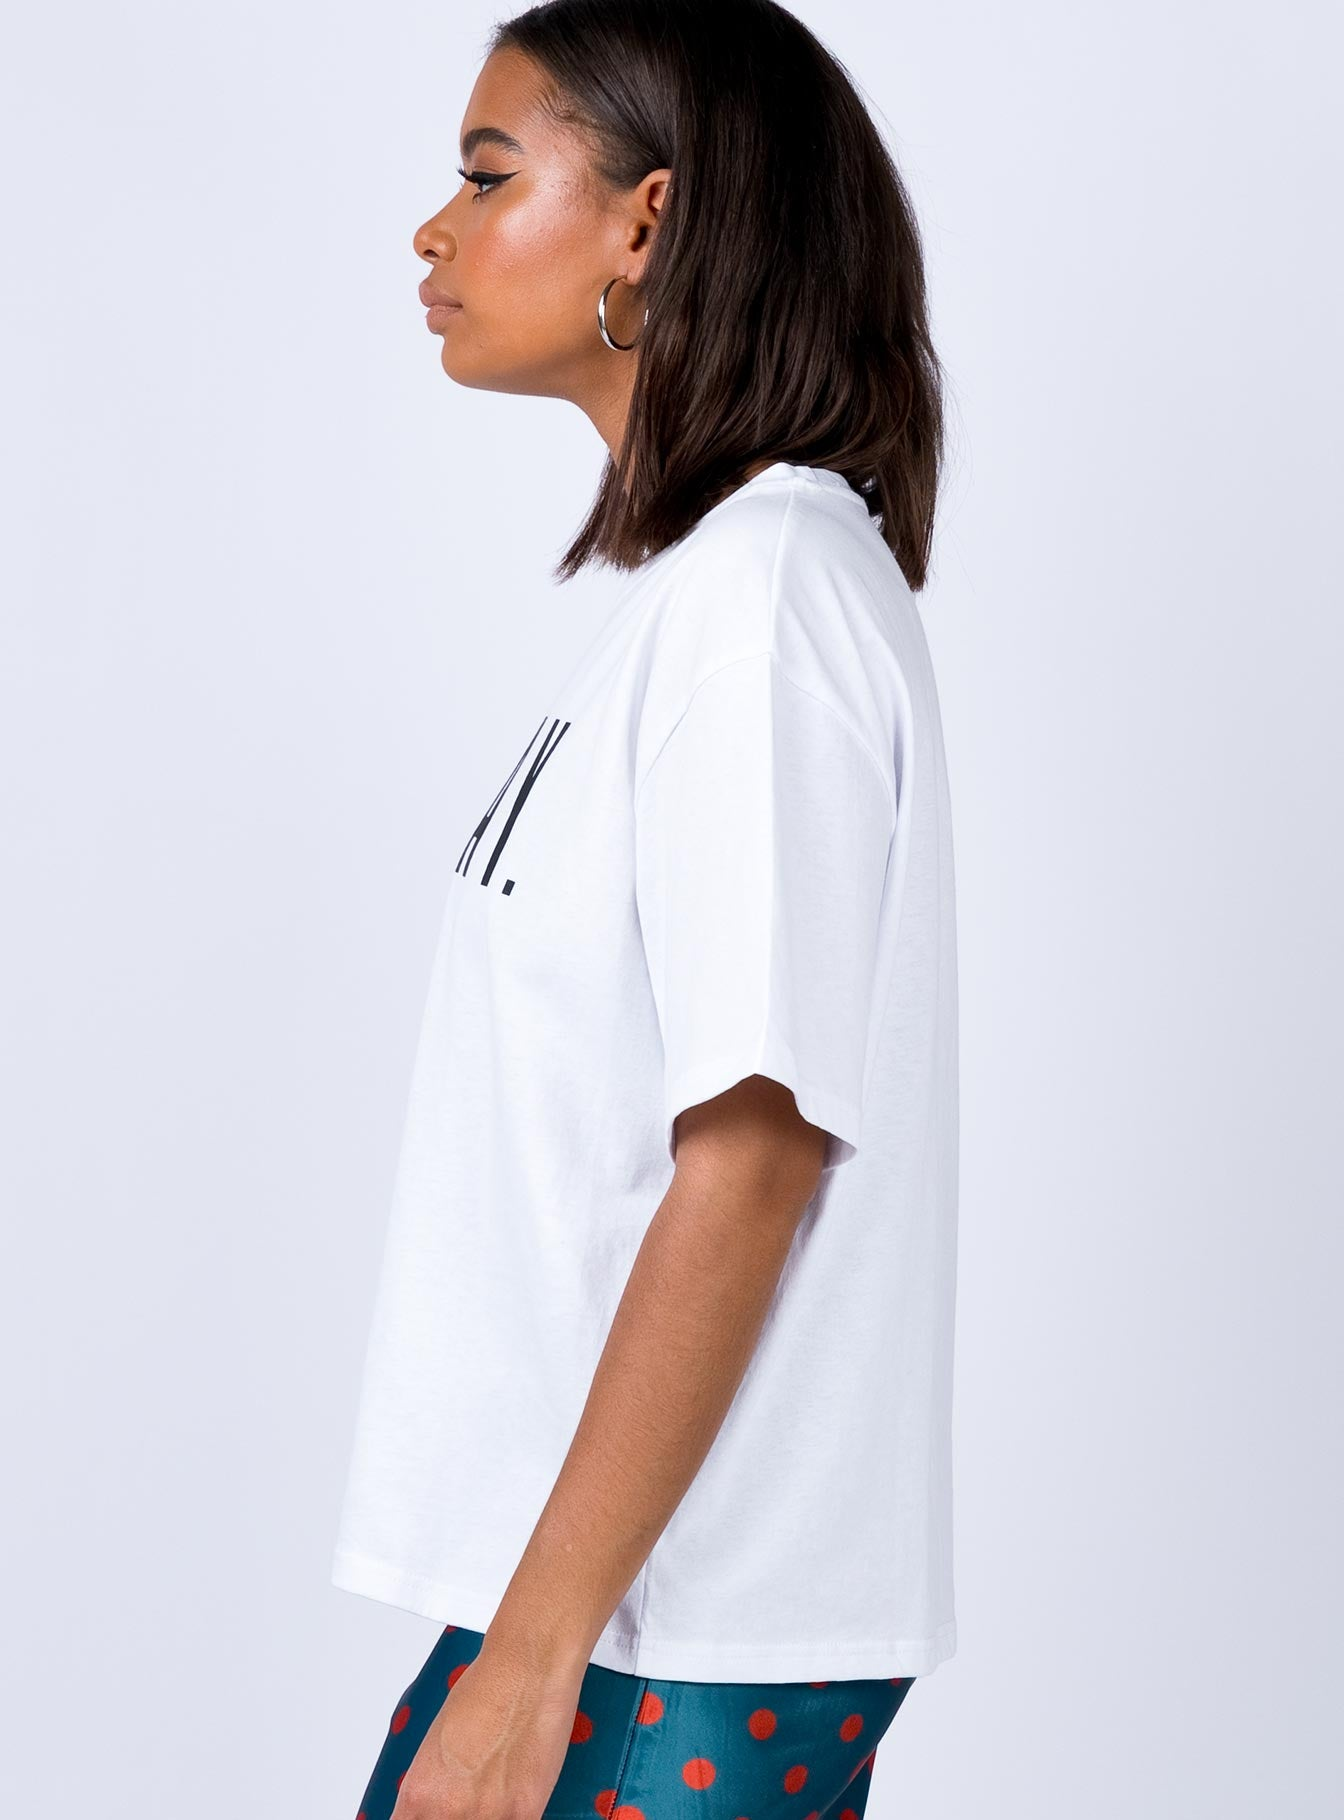 Sunday Snooze Tee White